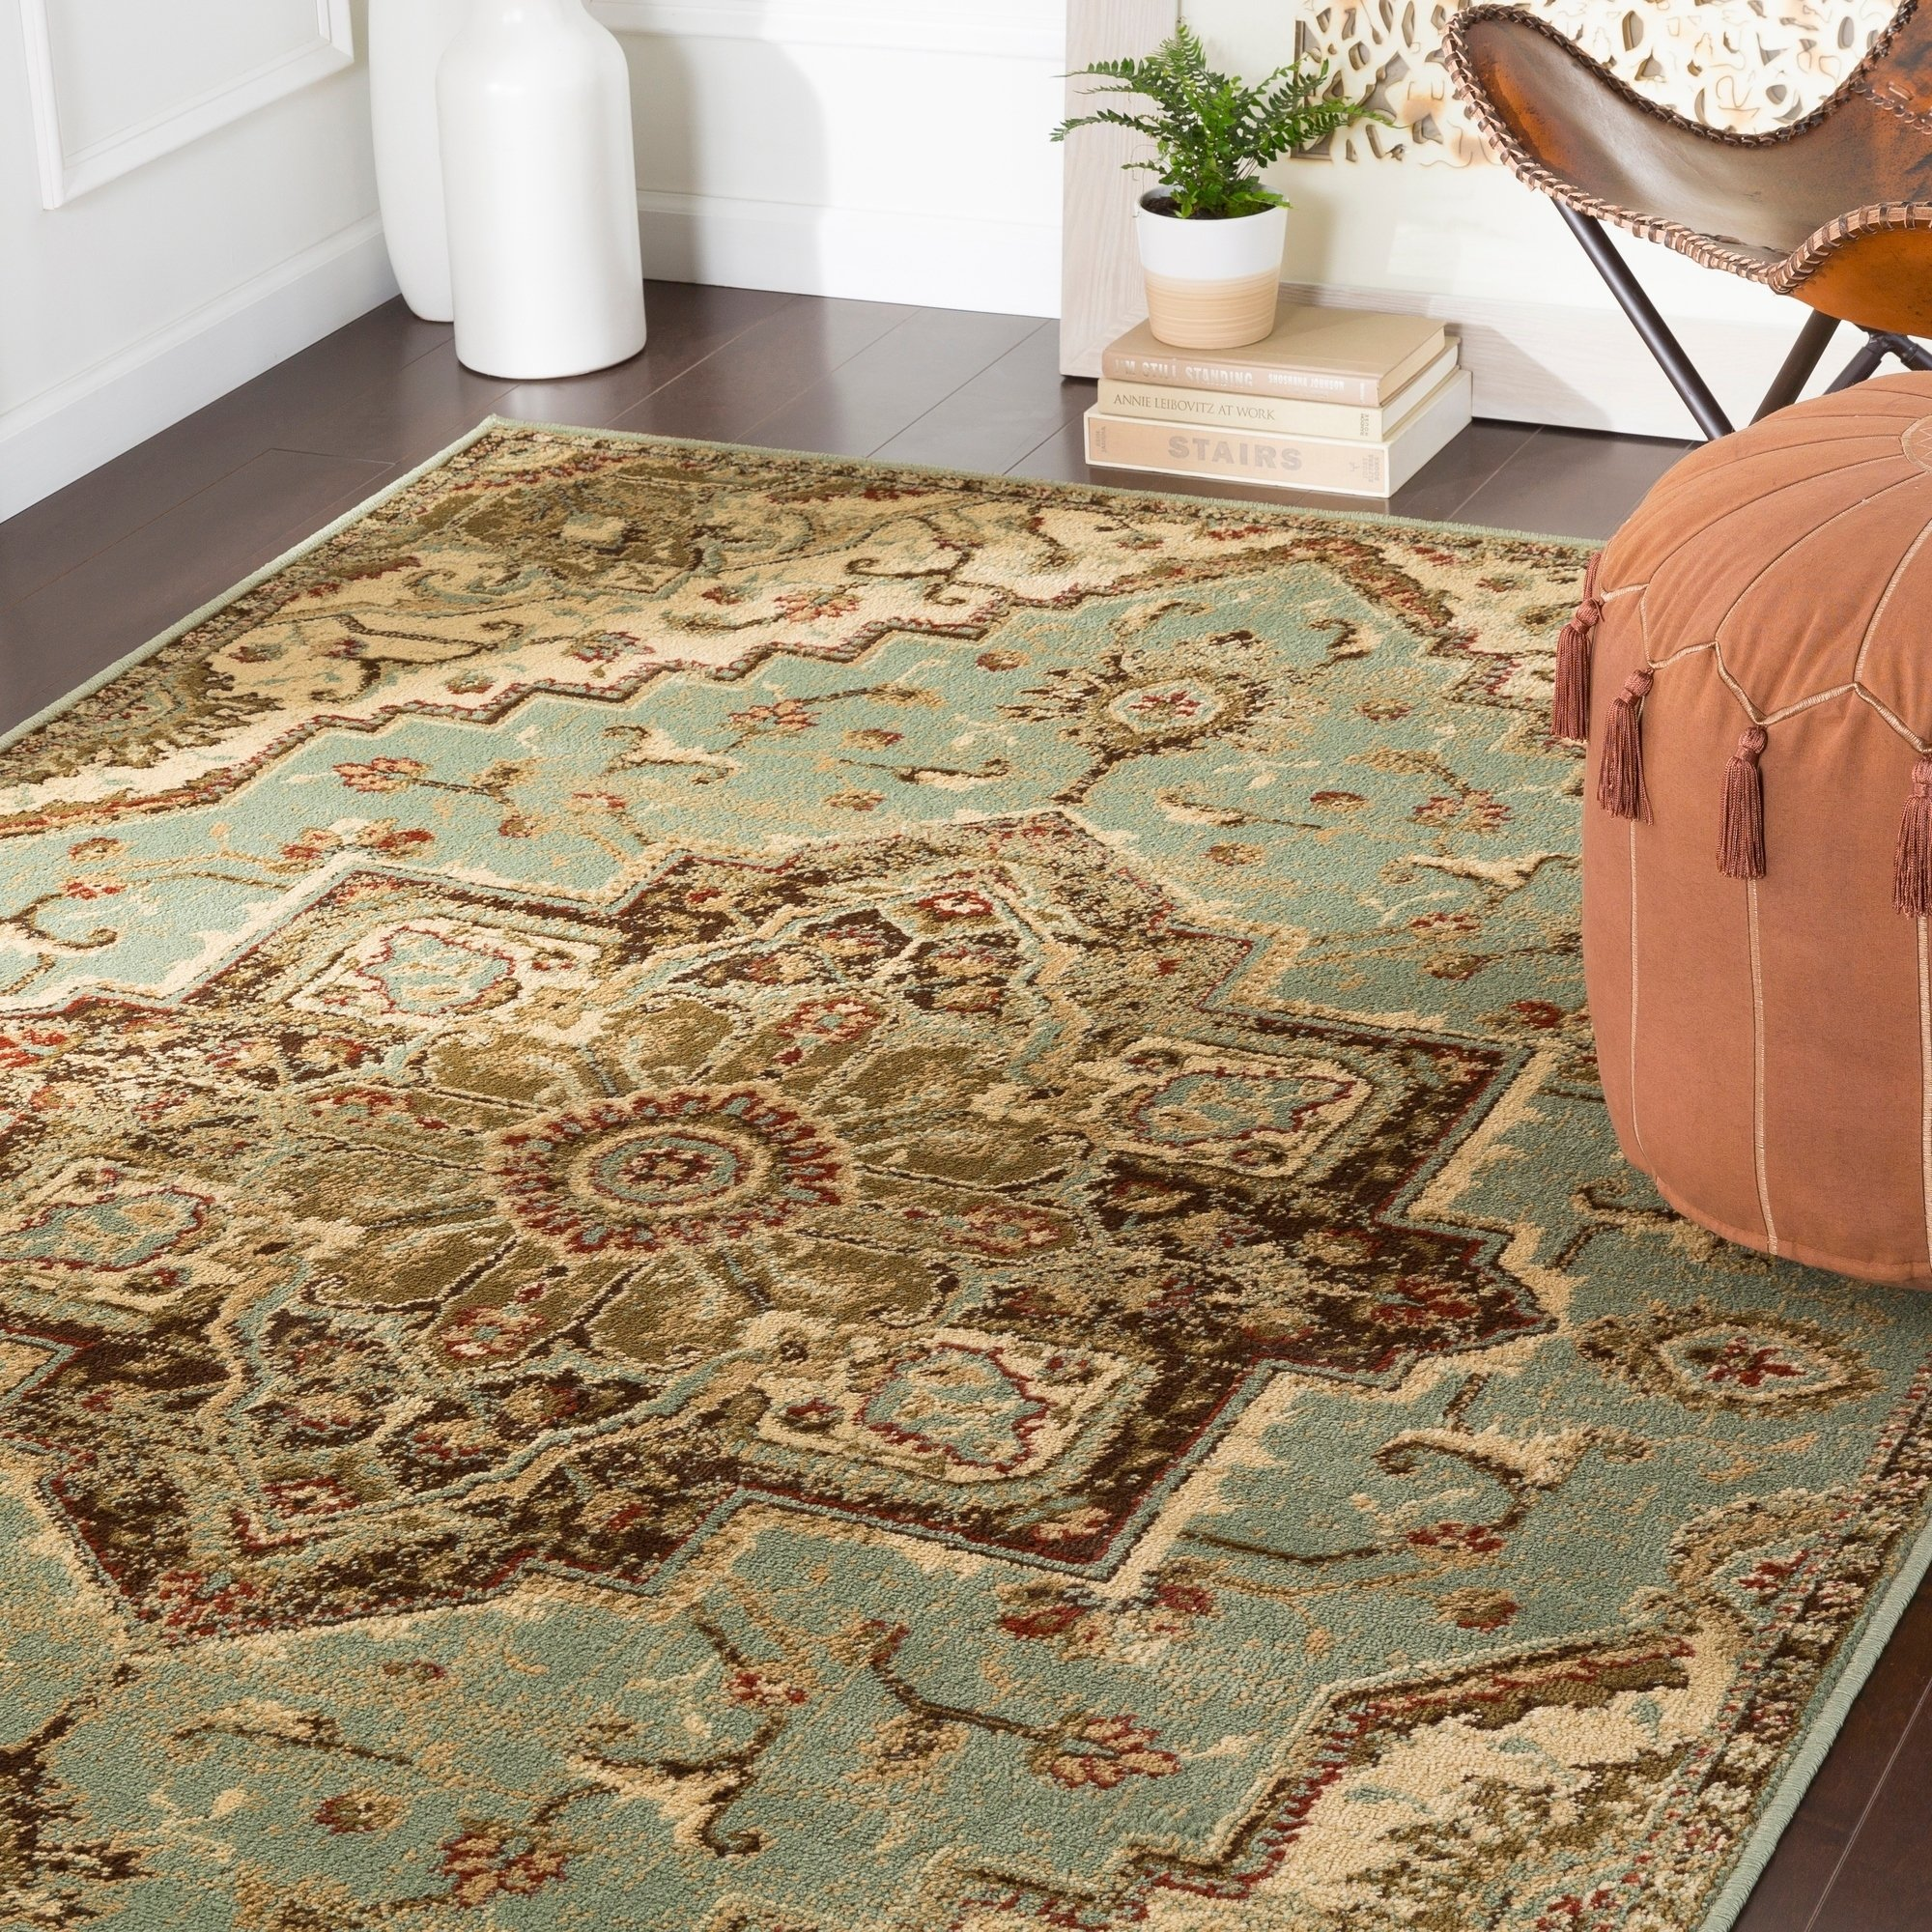 Online Shopping Bedding Furniture Electronics Jewelry Clothing More Area Rugs Colorful Rugs Rugs